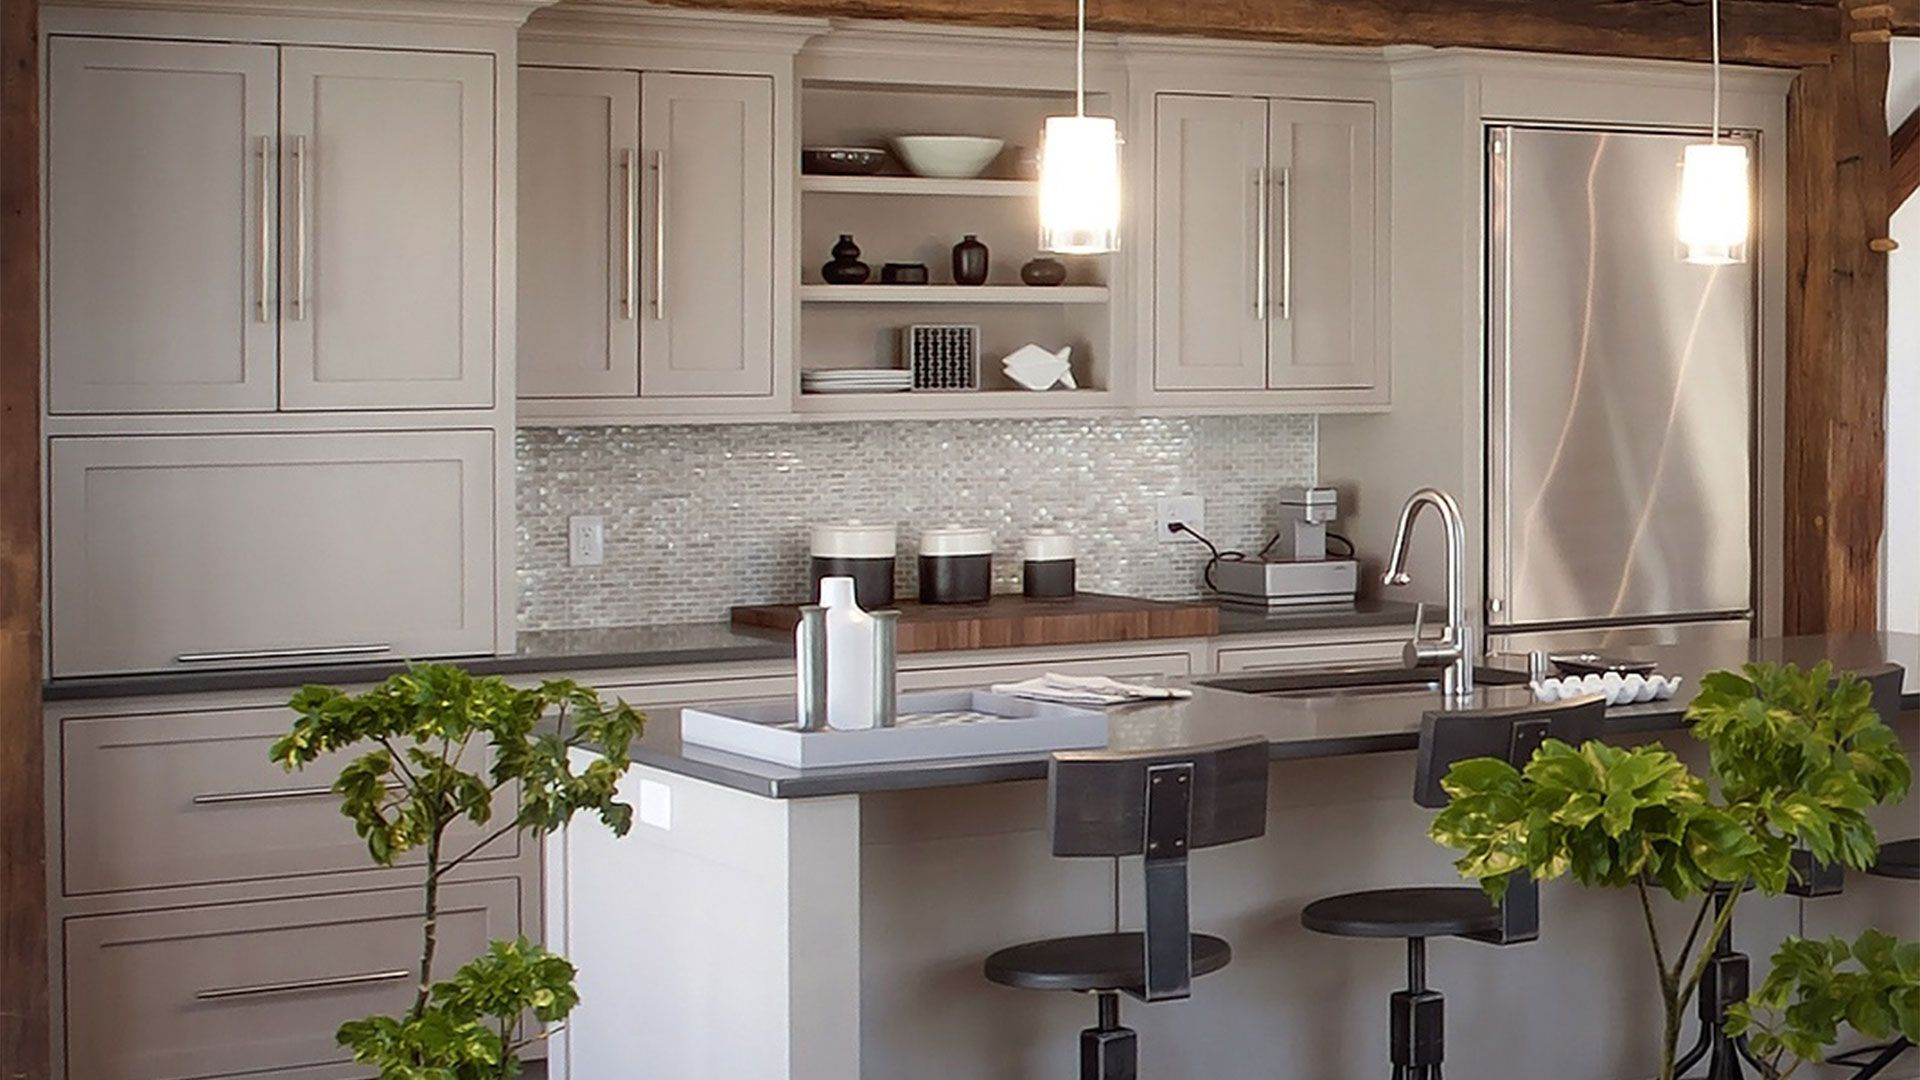 2015 Kitchens  Glass Tile Backsplash Latest Design Kitchen Adorable Design Kitchens Online 2018